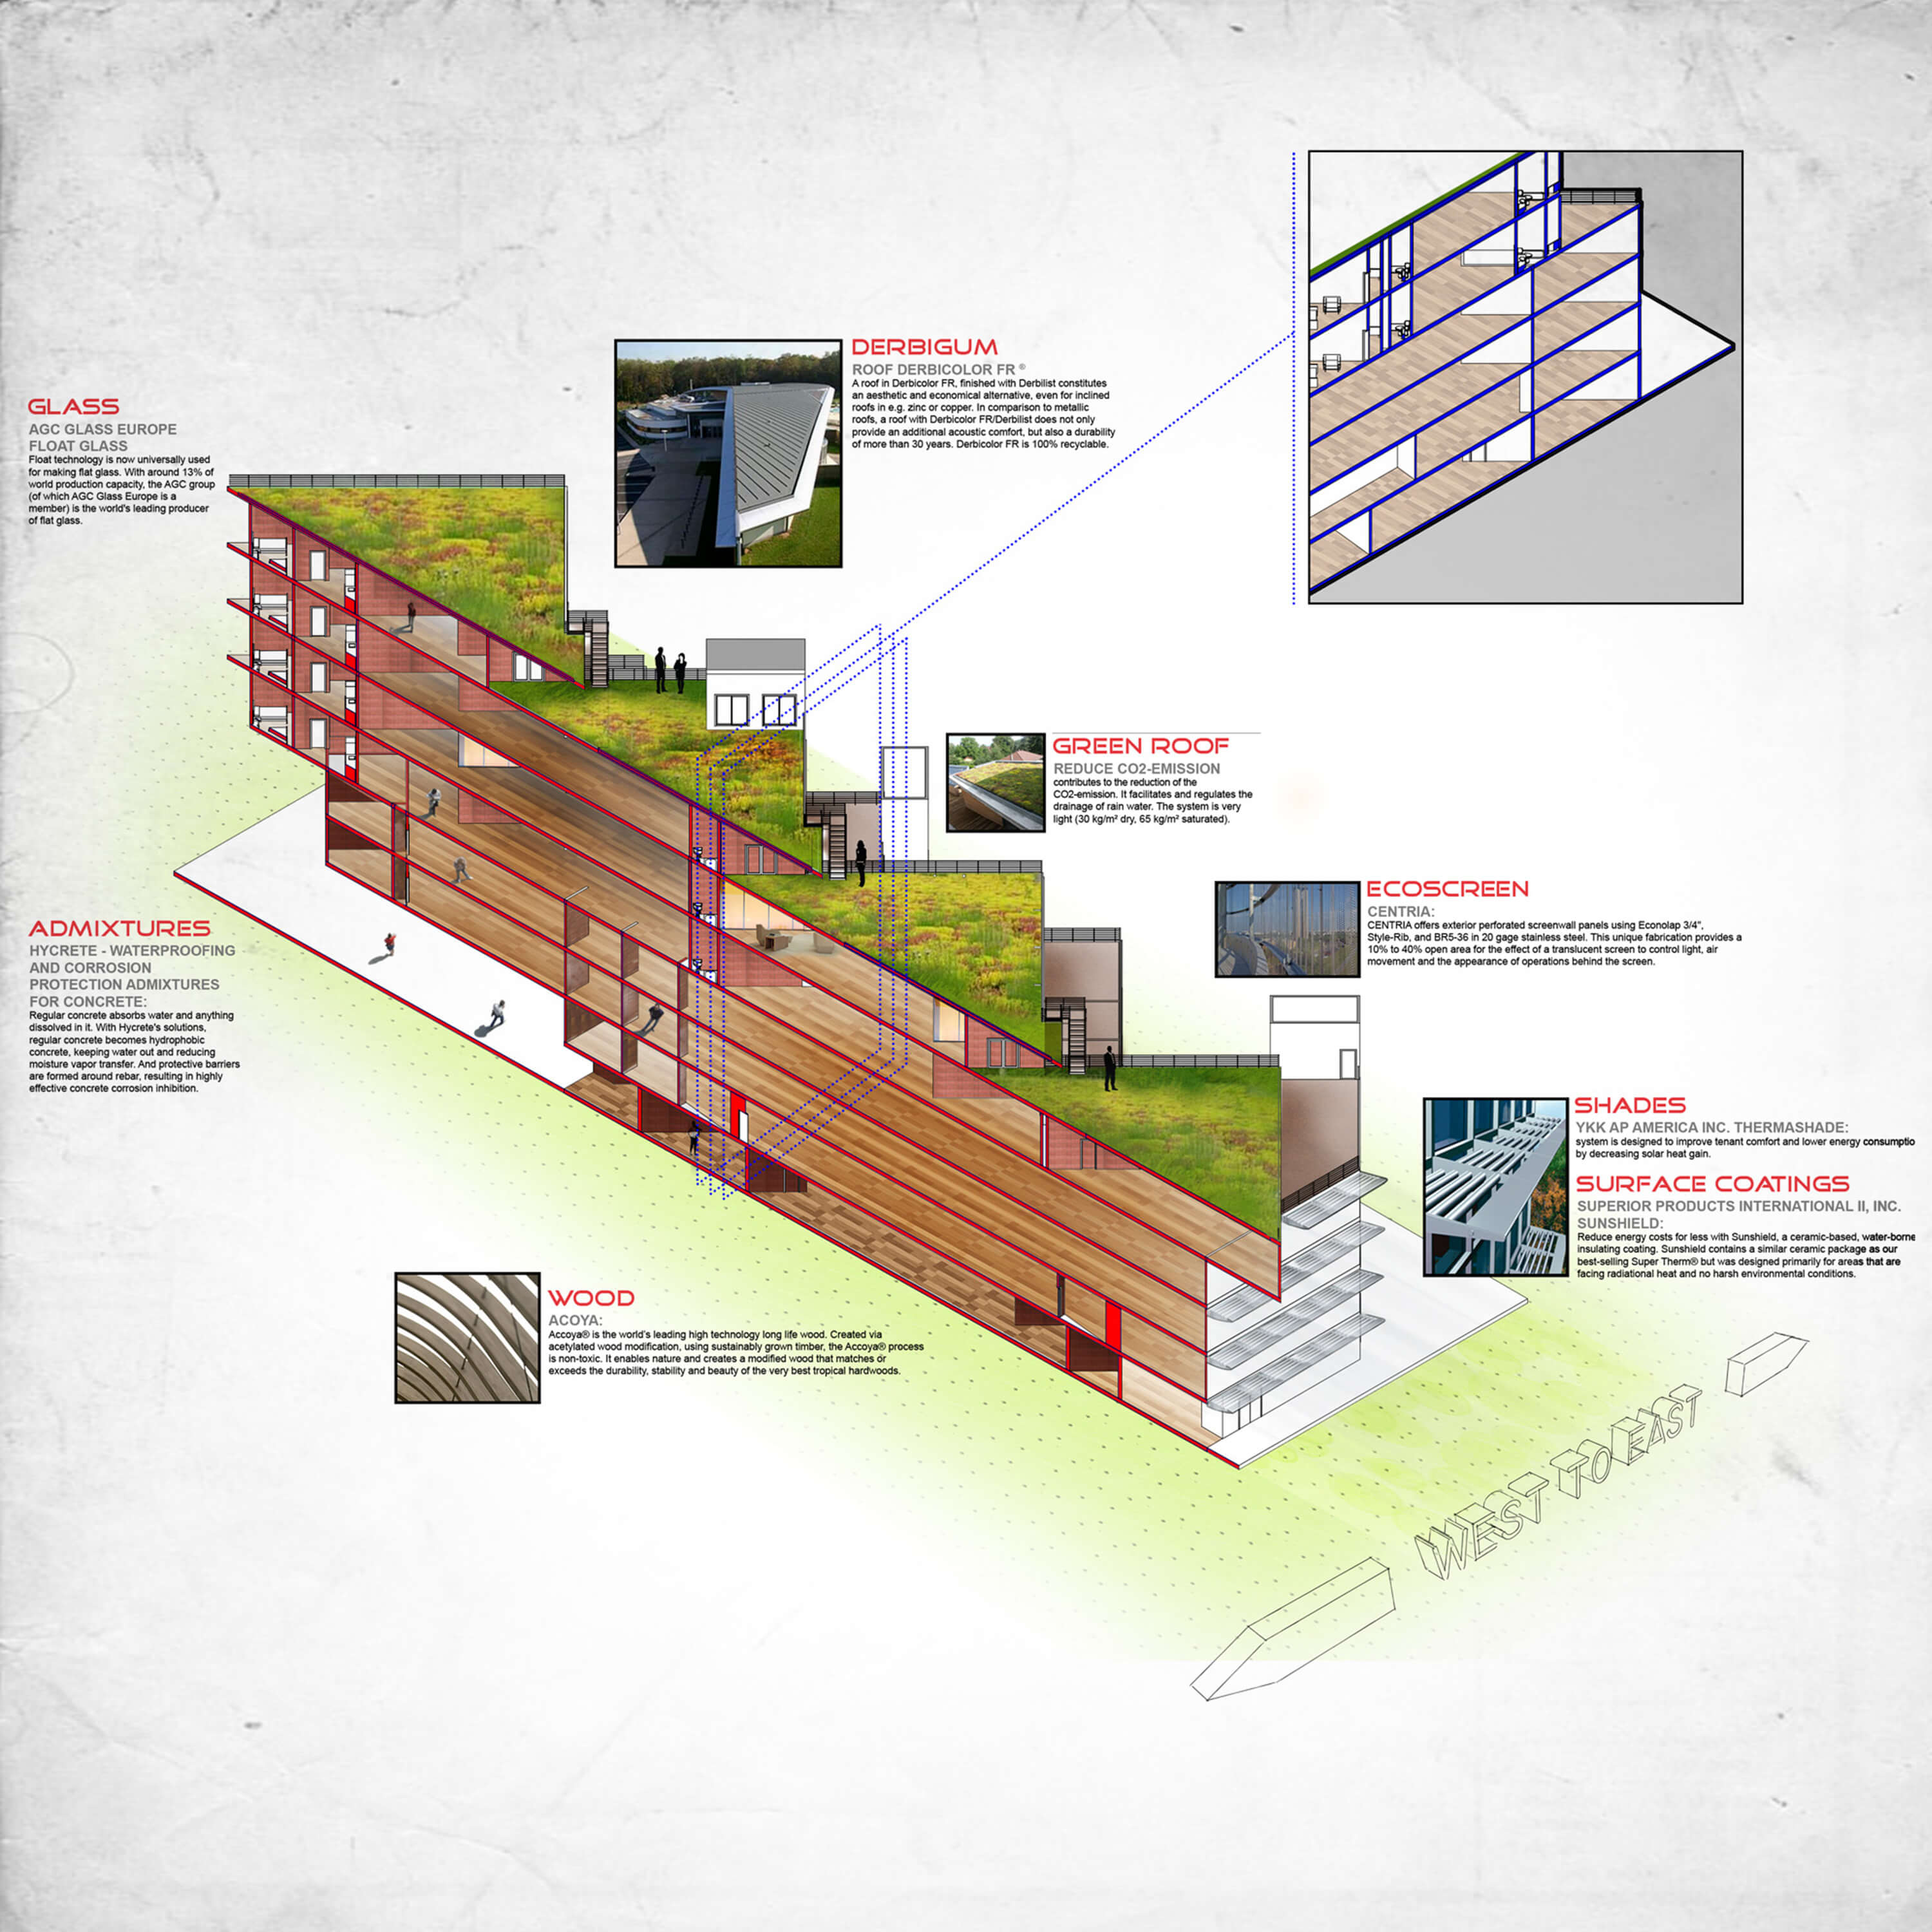 school Environmental Design - Material Selection